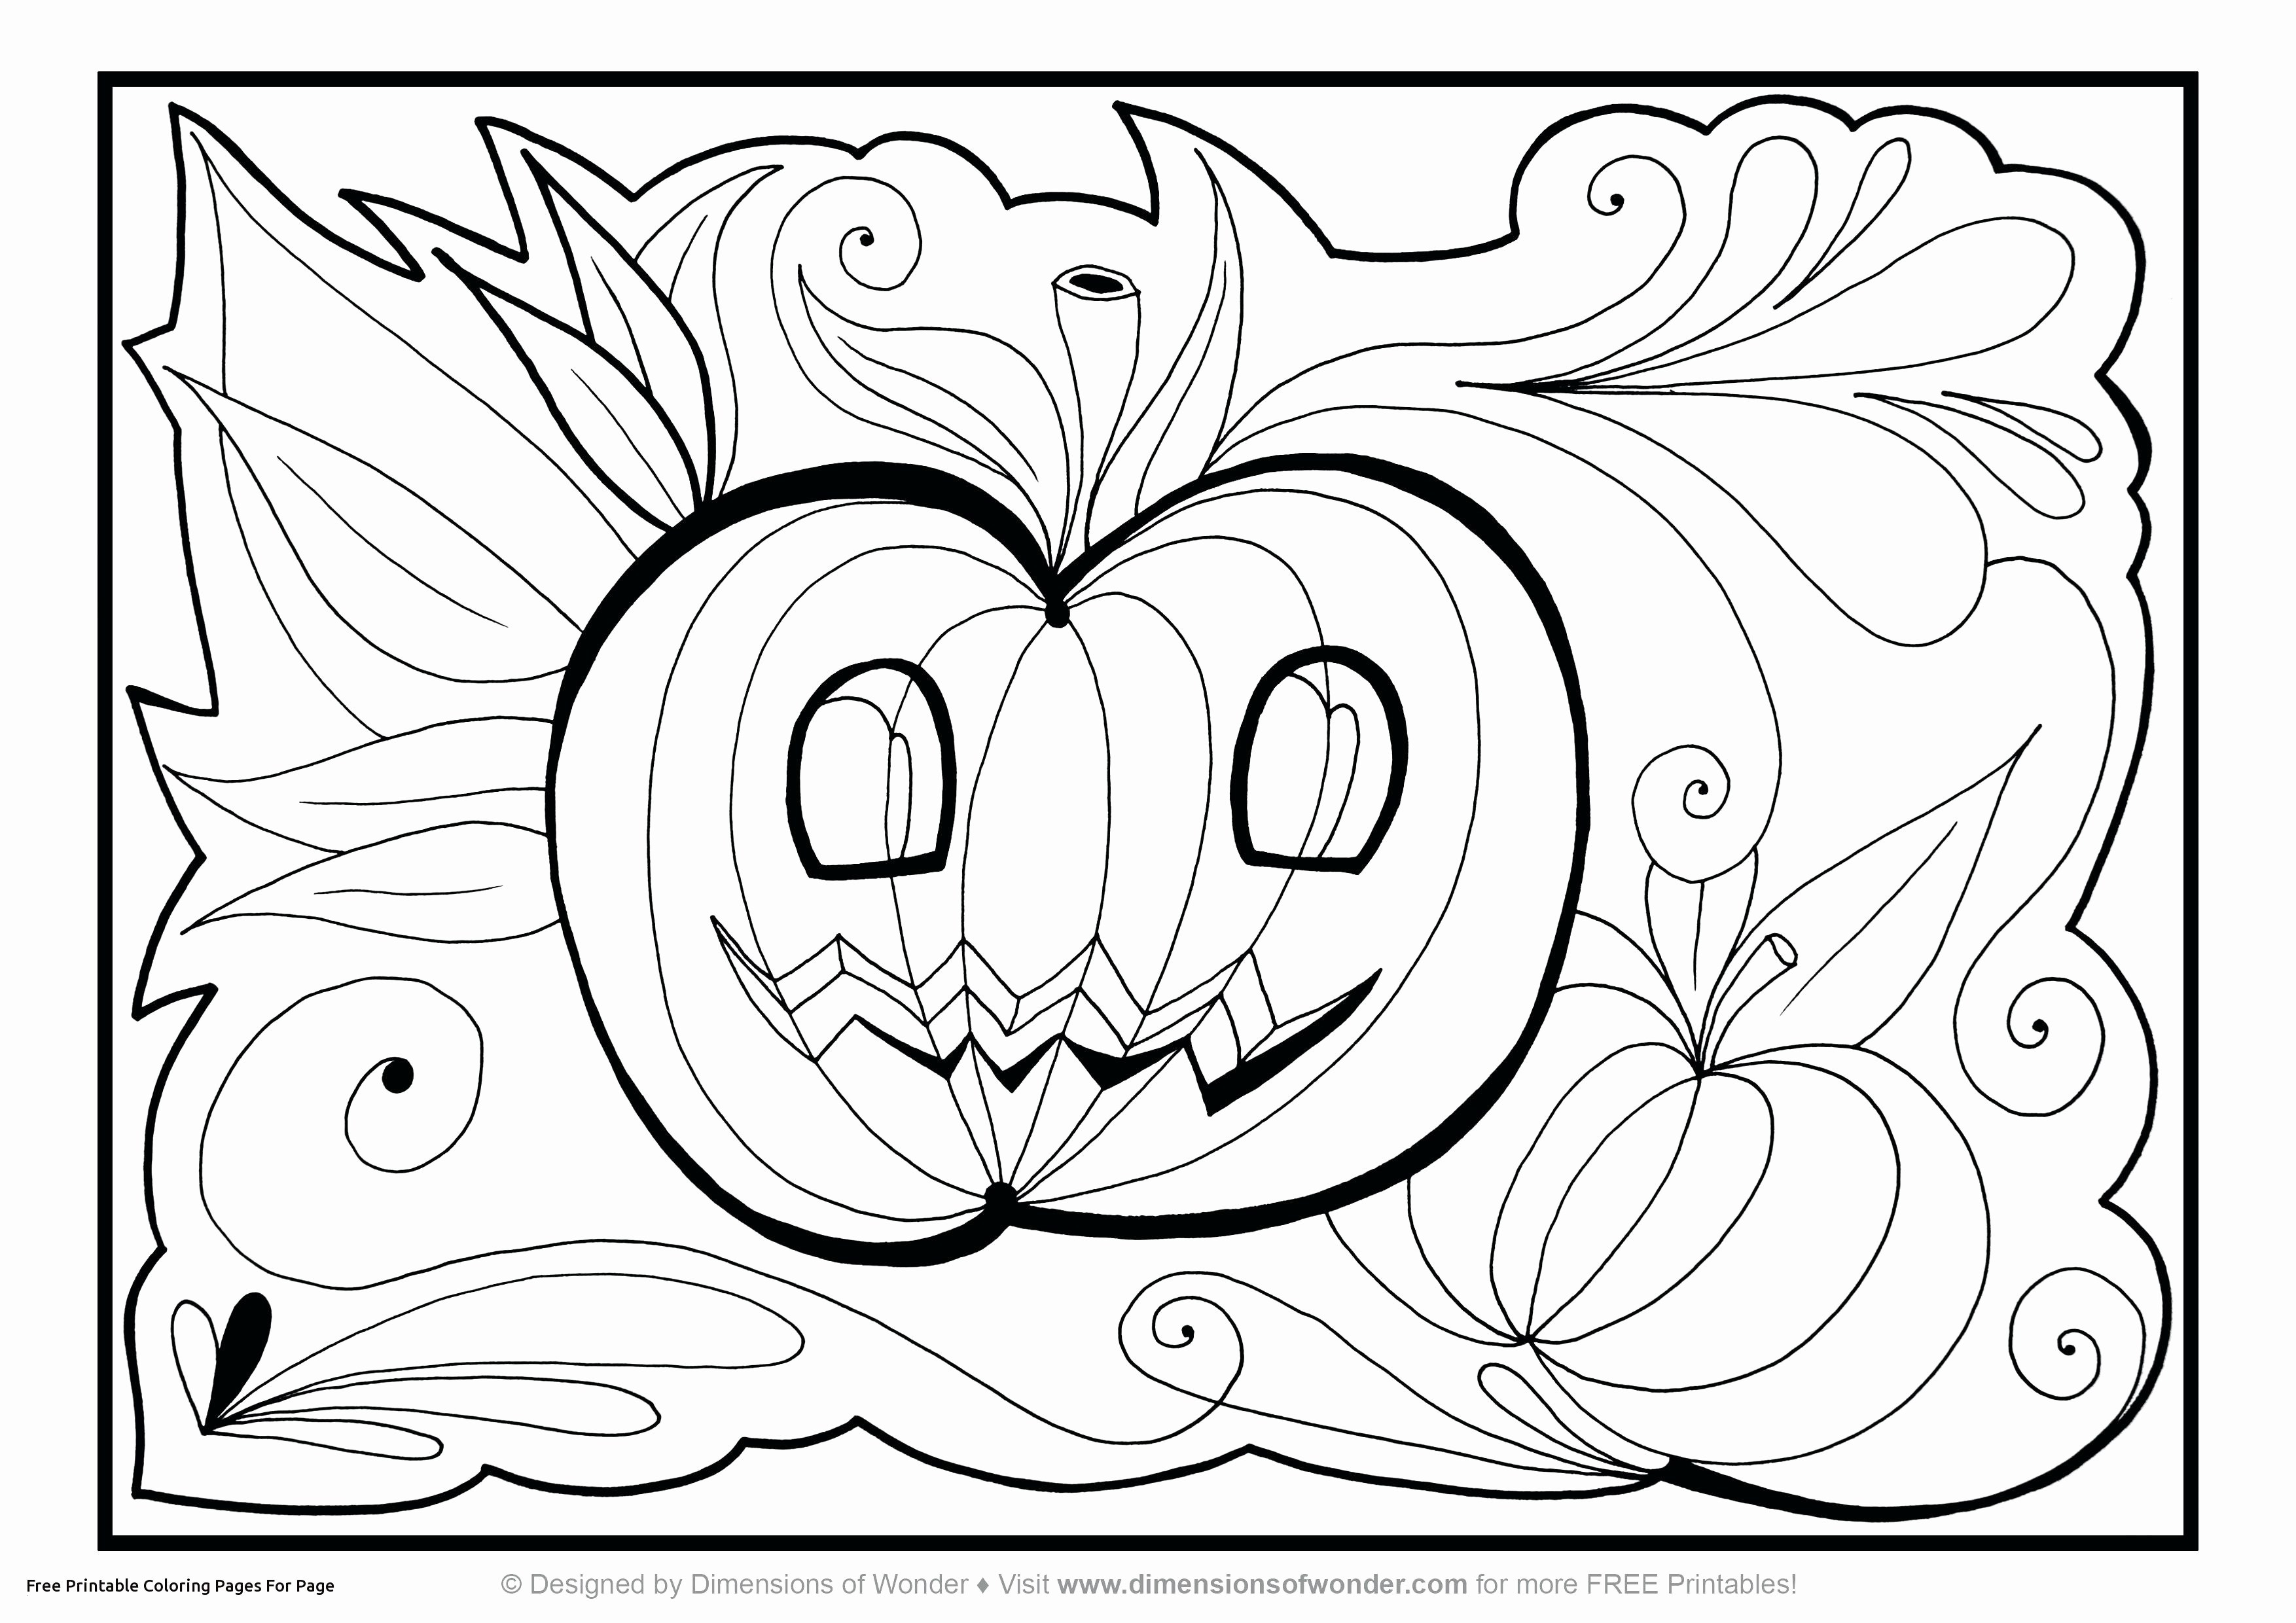 24 Coloring Pages Music Notes Gallery - Coloring Sheets